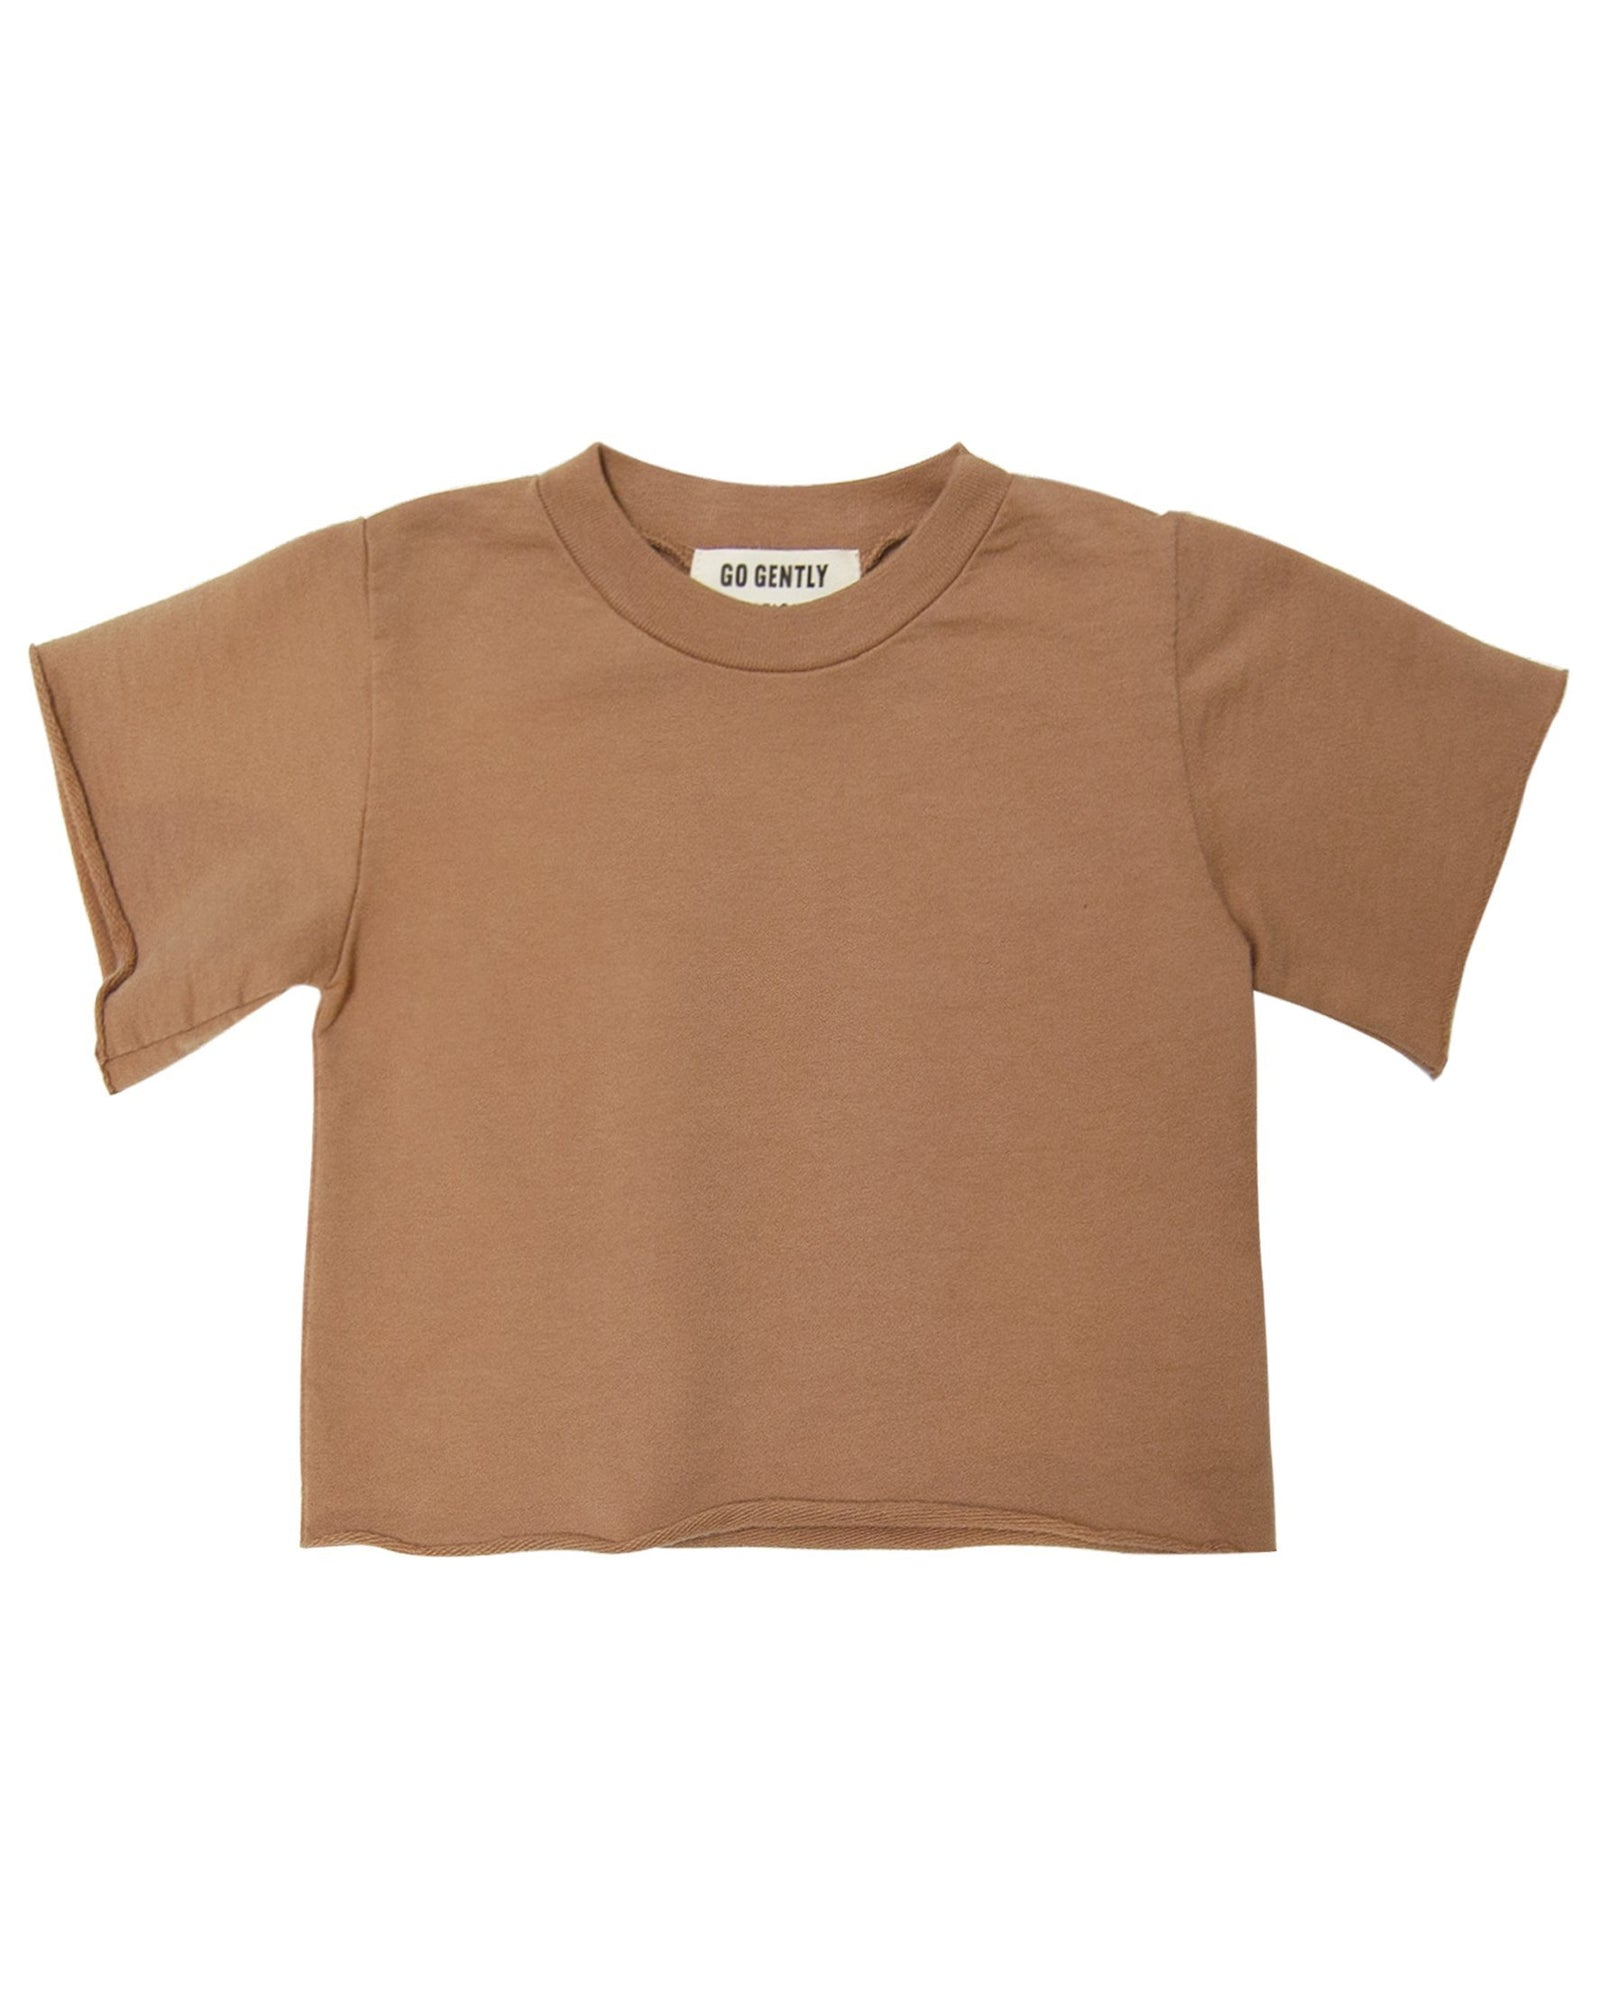 Little go gently nation girl french terry tee in tanin